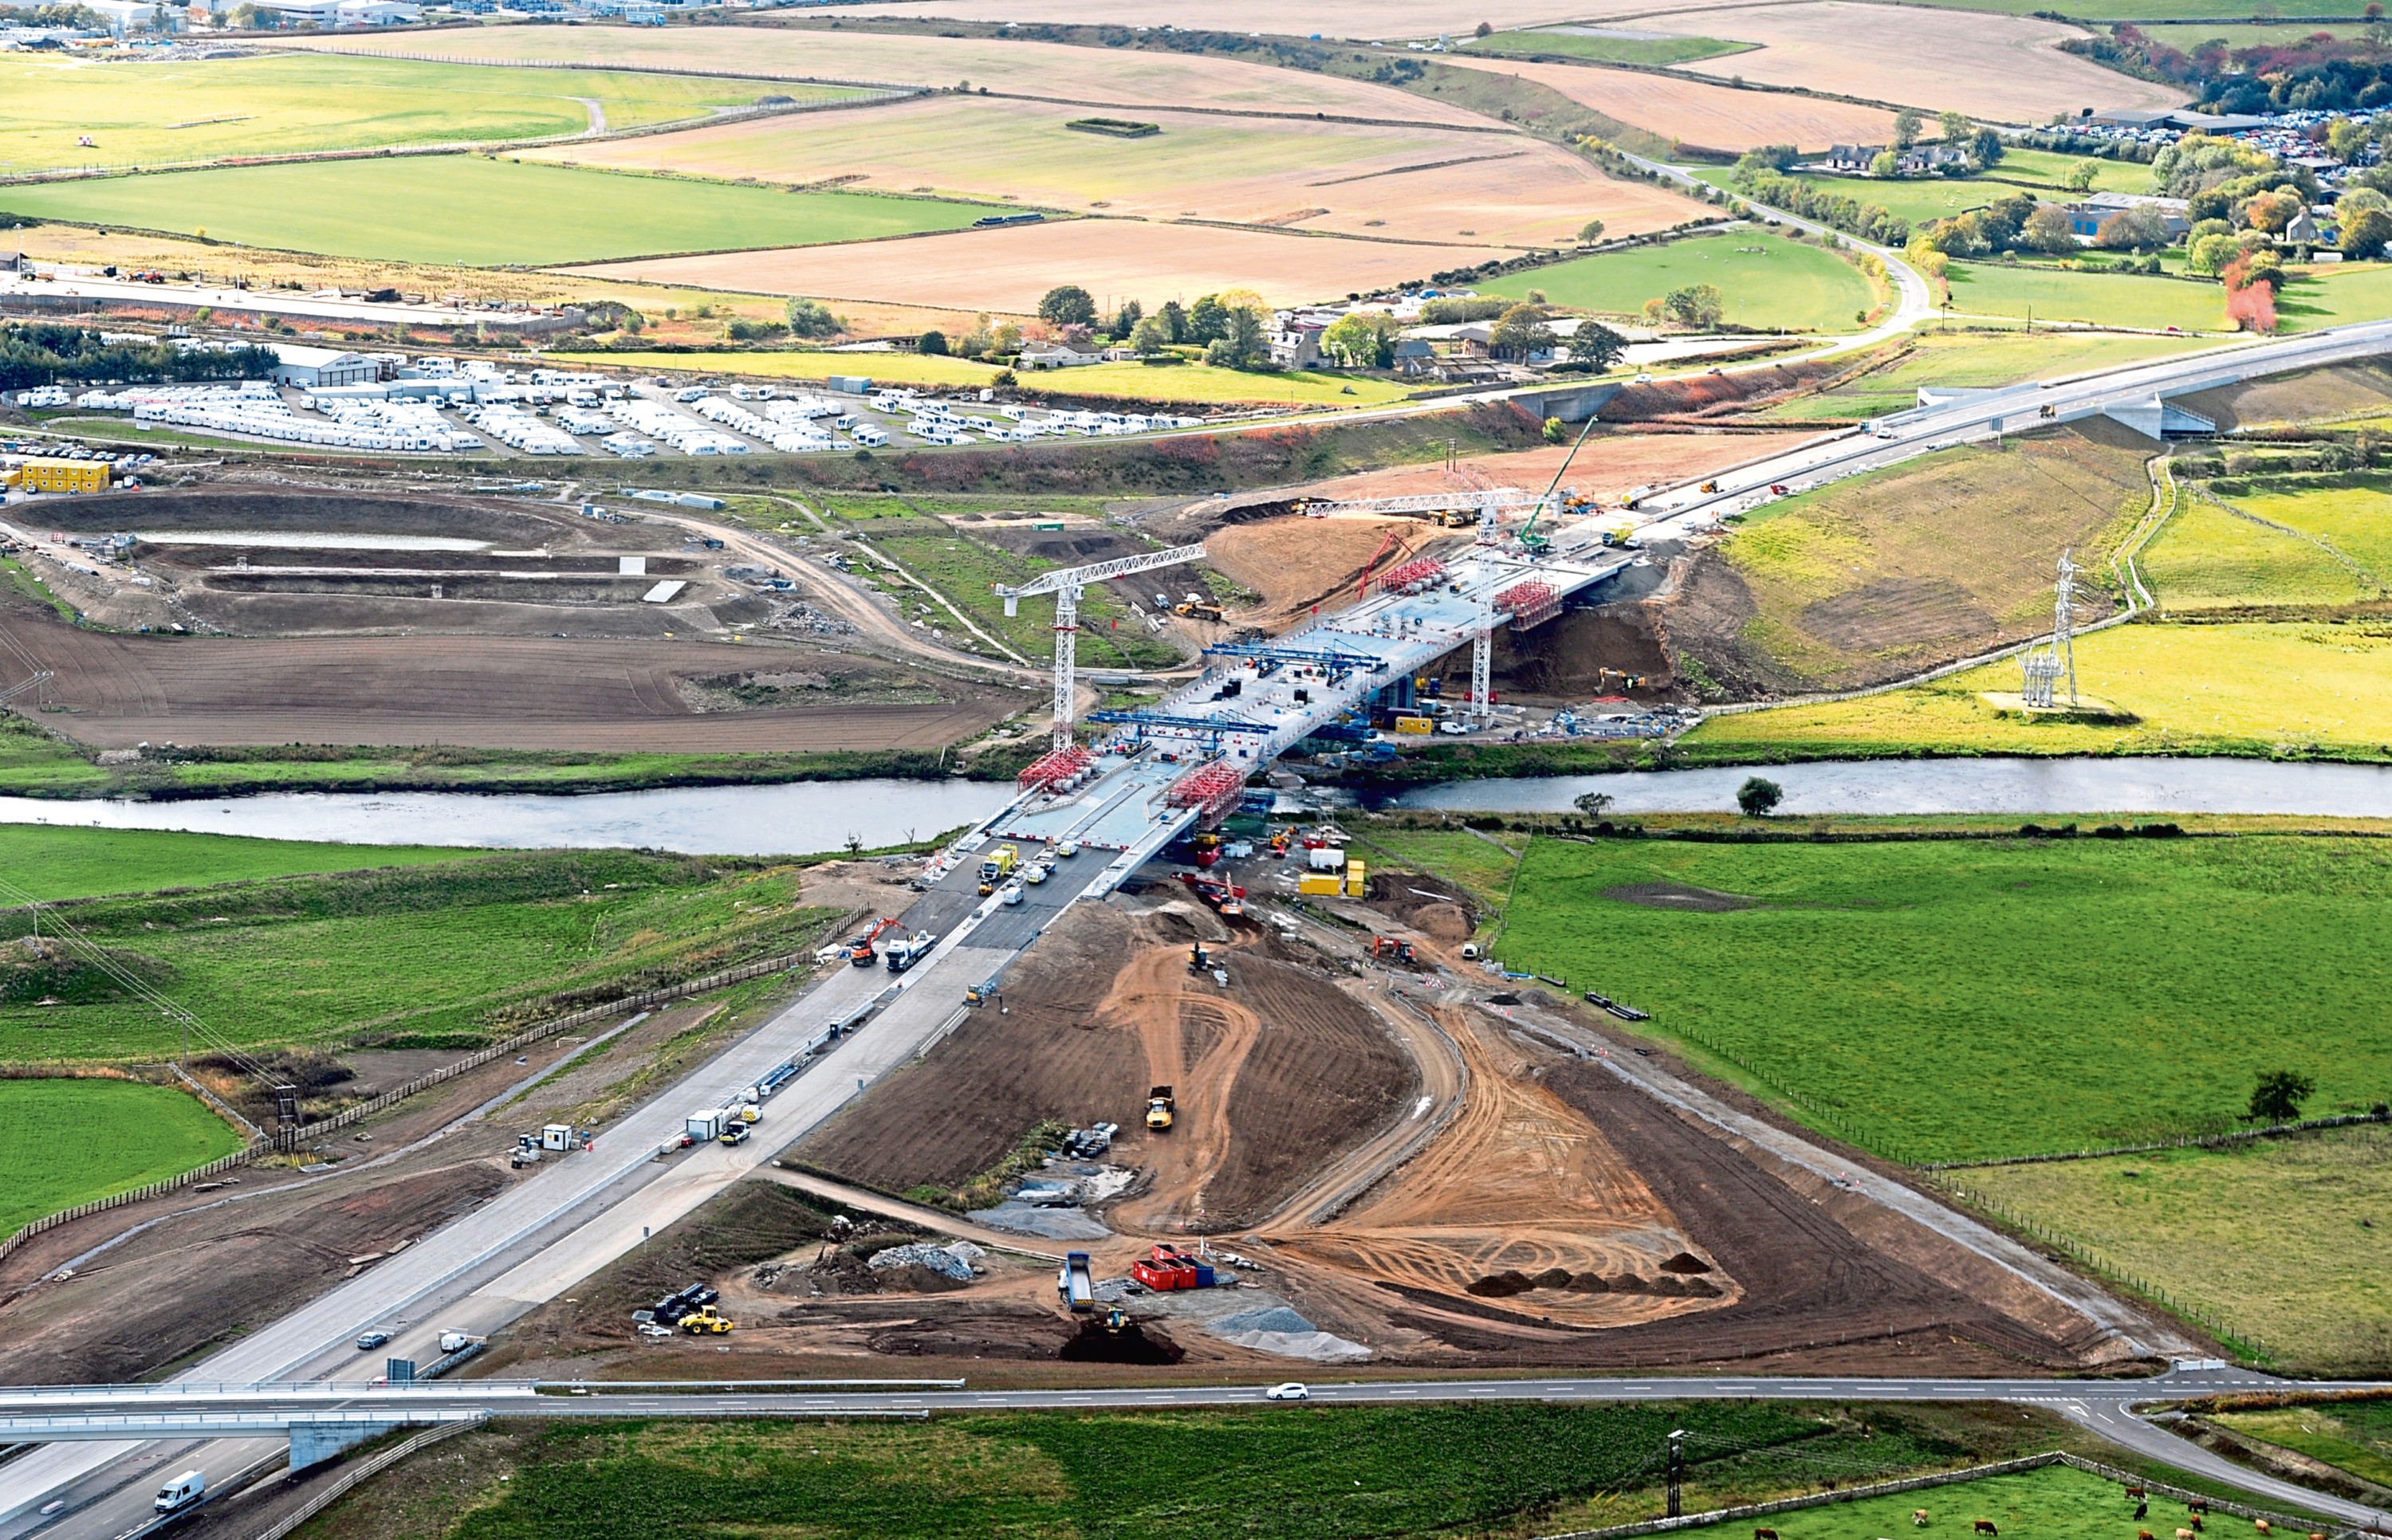 The new bridge at Dyce over the River Don, which is still under construction